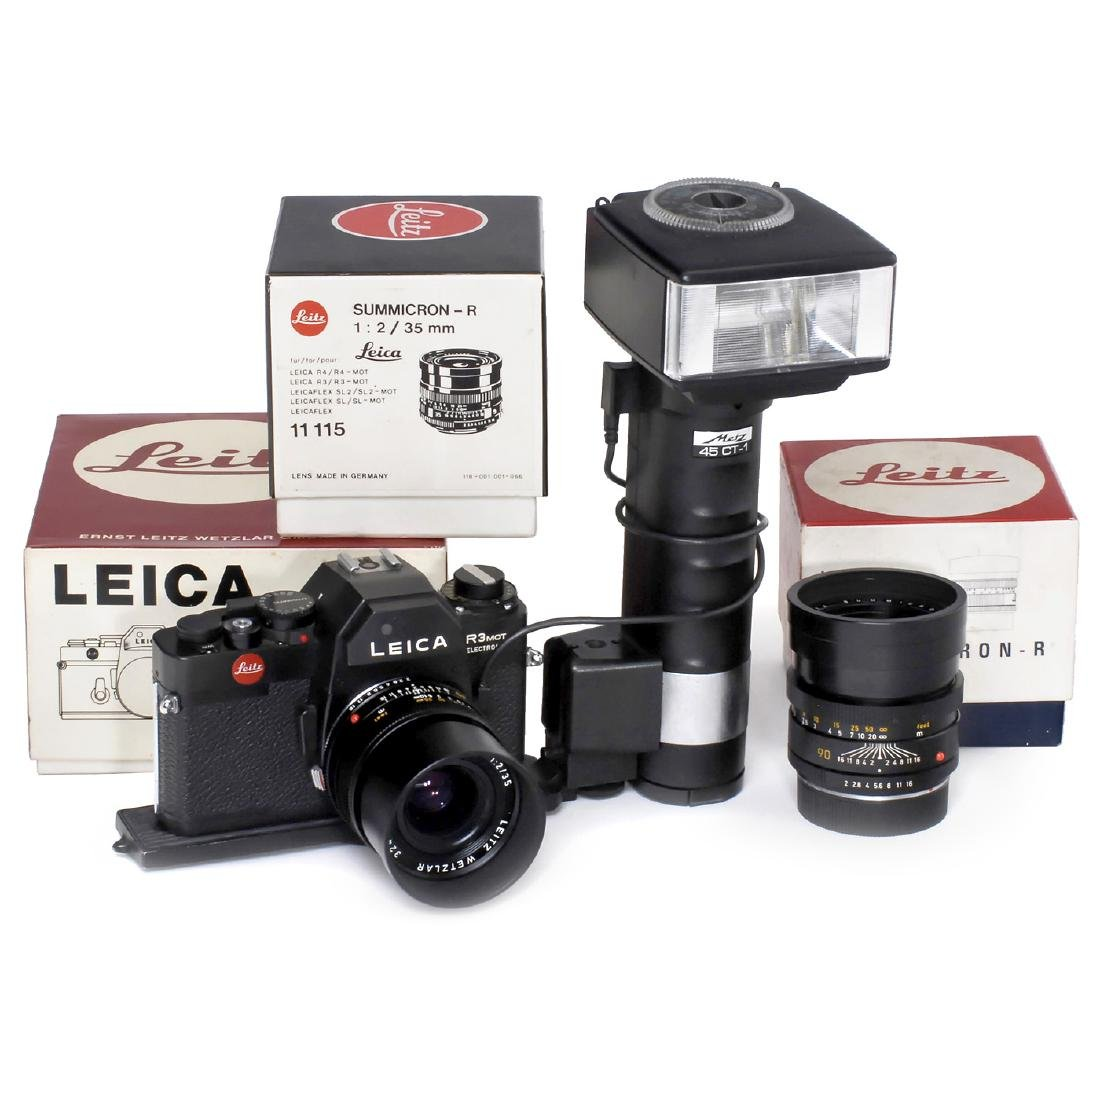 Leica R3Mot Electronic with 2 Lenses, c. 1979